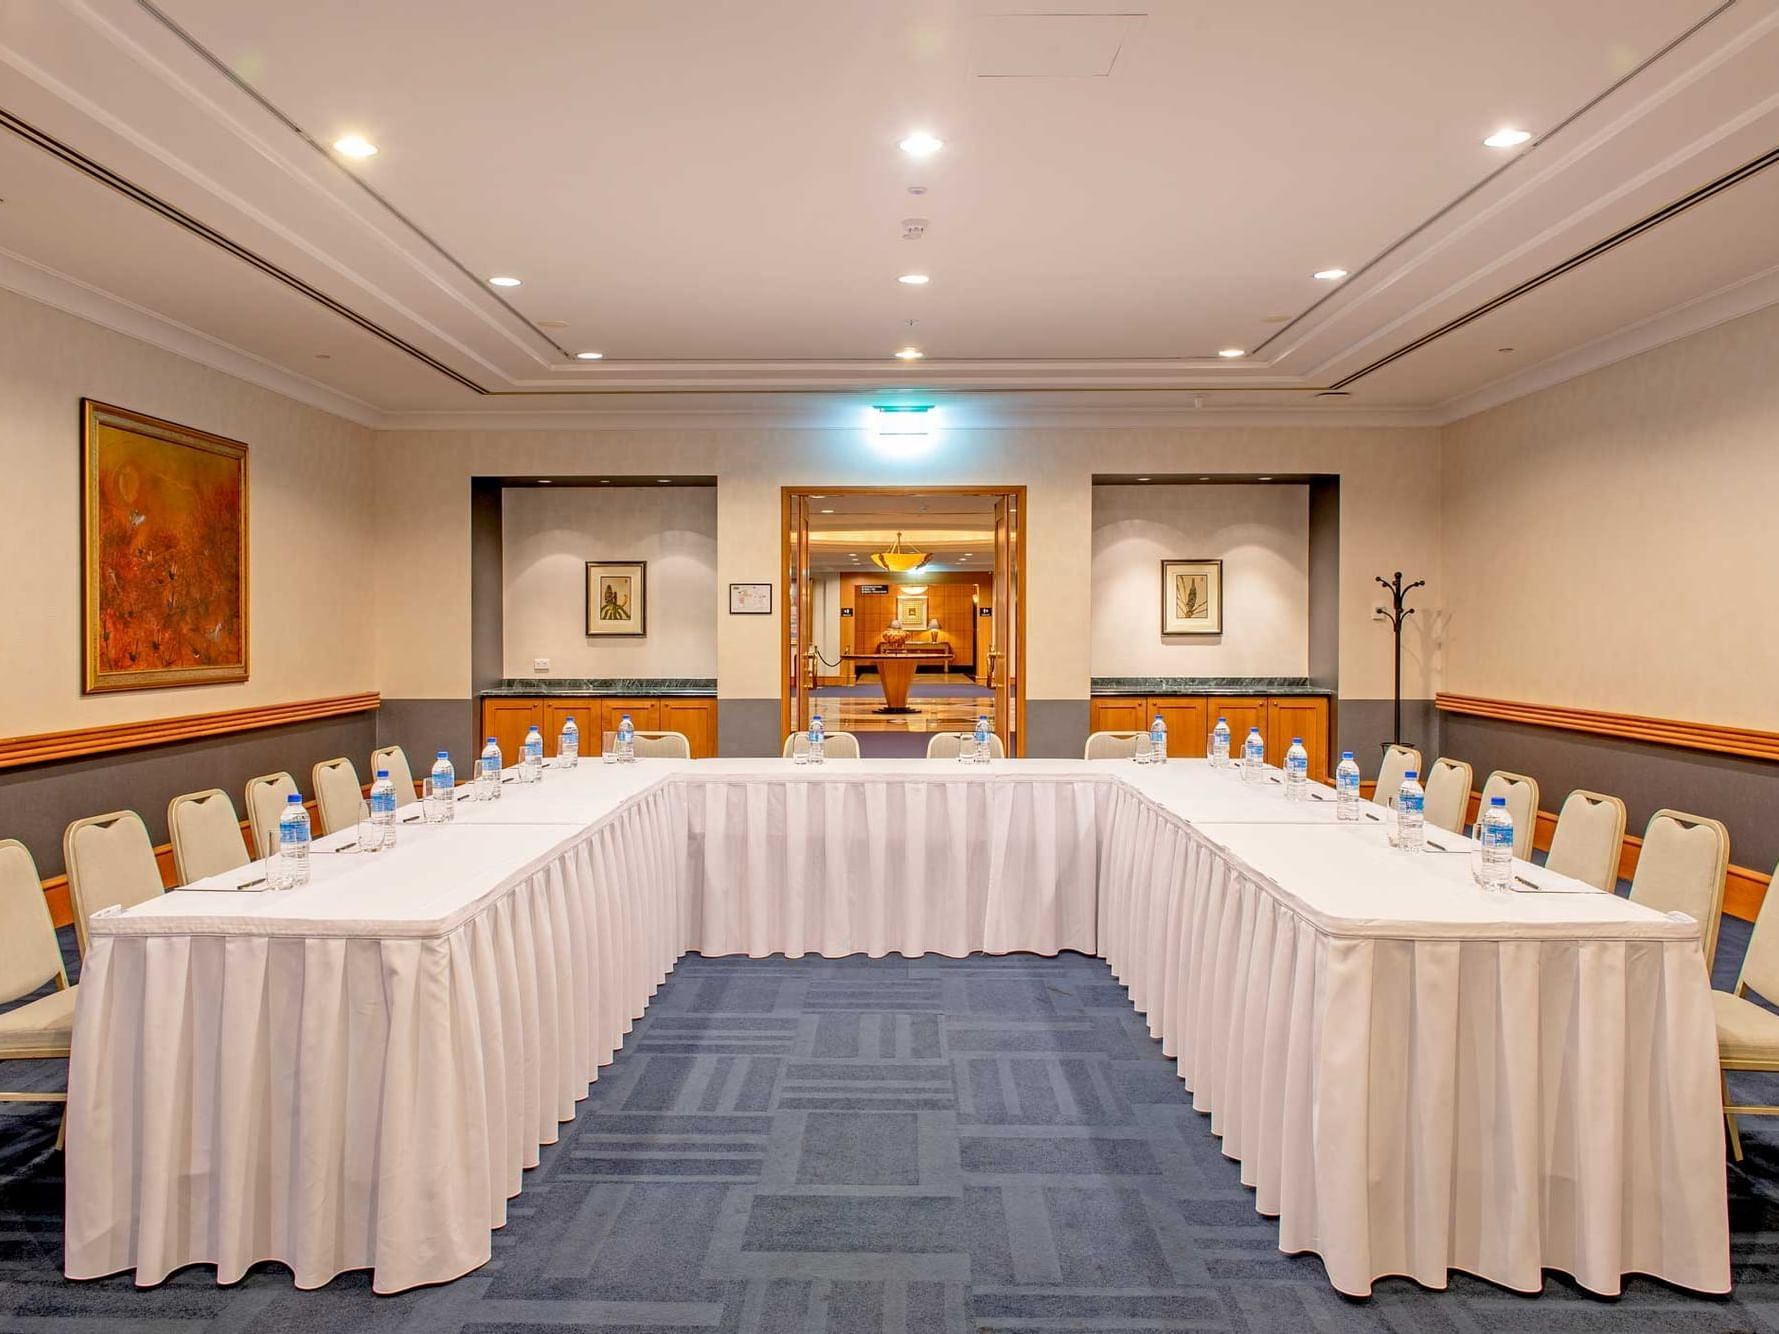 A view of the Meeting Room arranged in U-shape in Duxton Hotel